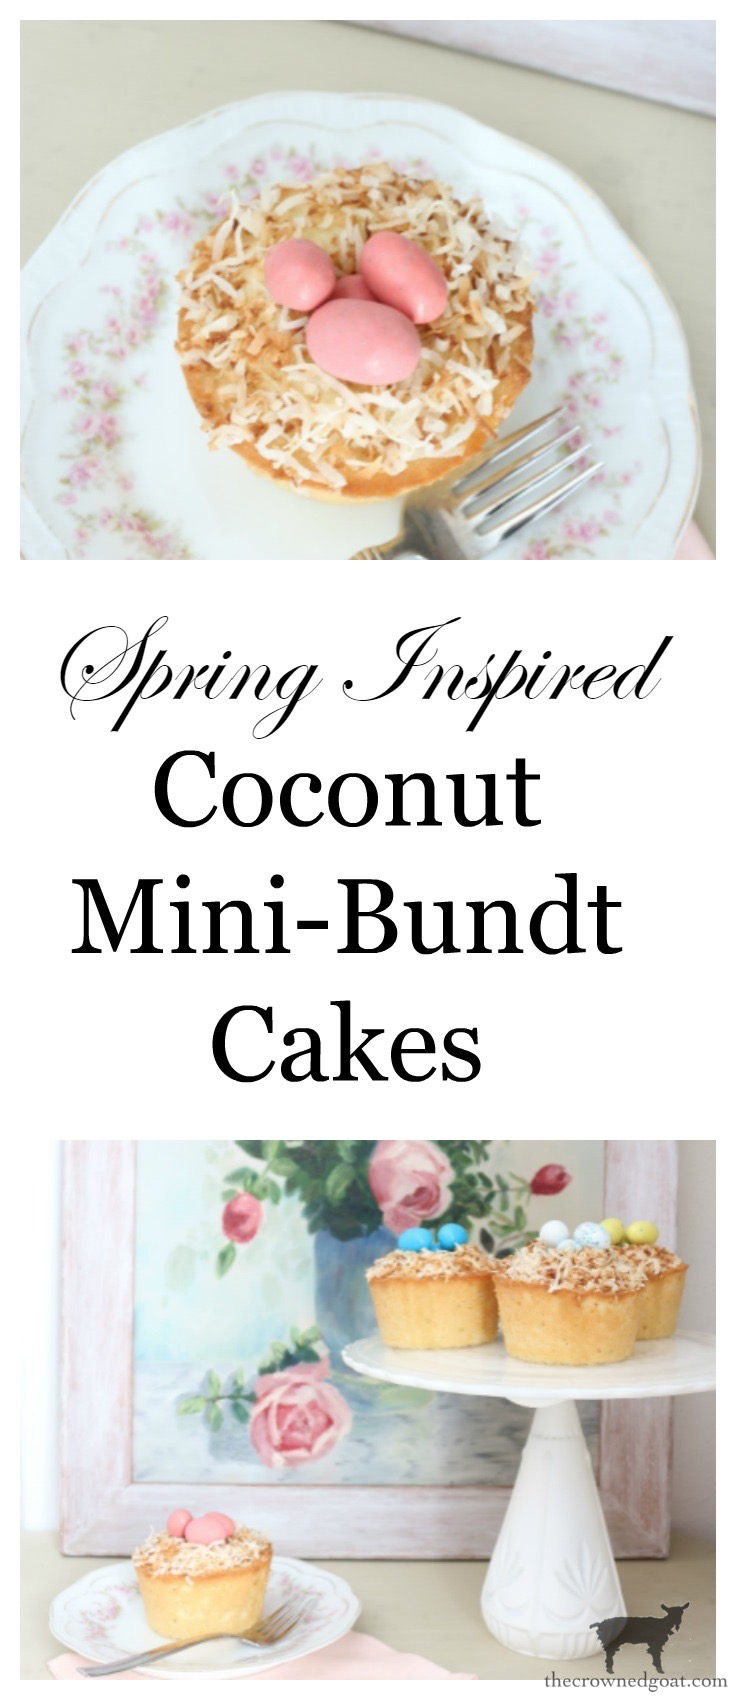 Coconut-Mini-Bundt-Cakes-The-Crowned-Goat-18 Spring Inspiration: Coconut Mini-Bundt Cakes Baking Holidays Spring